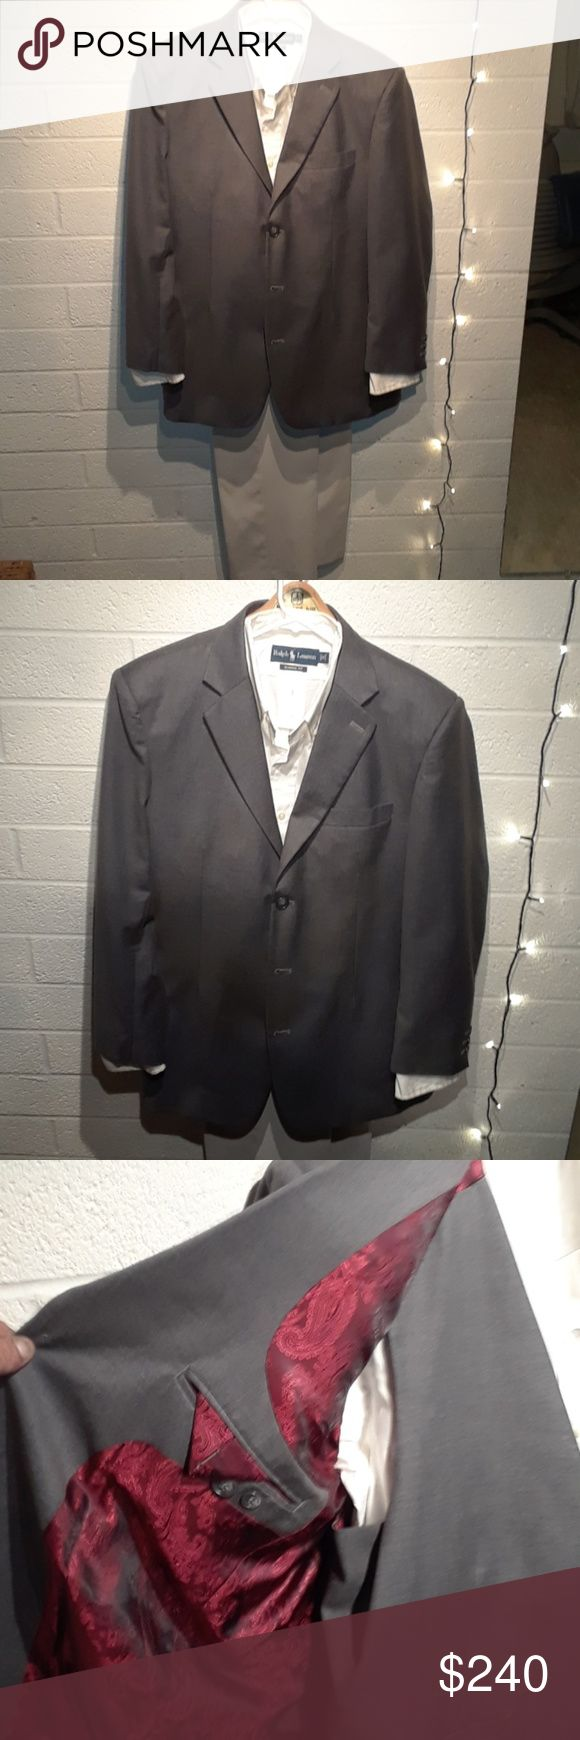 Mens Suit and Vest by T4L size 42R Smart Dress Casual in Professional Grey With an Evening red paisley satin lining. An All purpose Jacket by Fits You T4L. T4L Suits & Blazers Suits